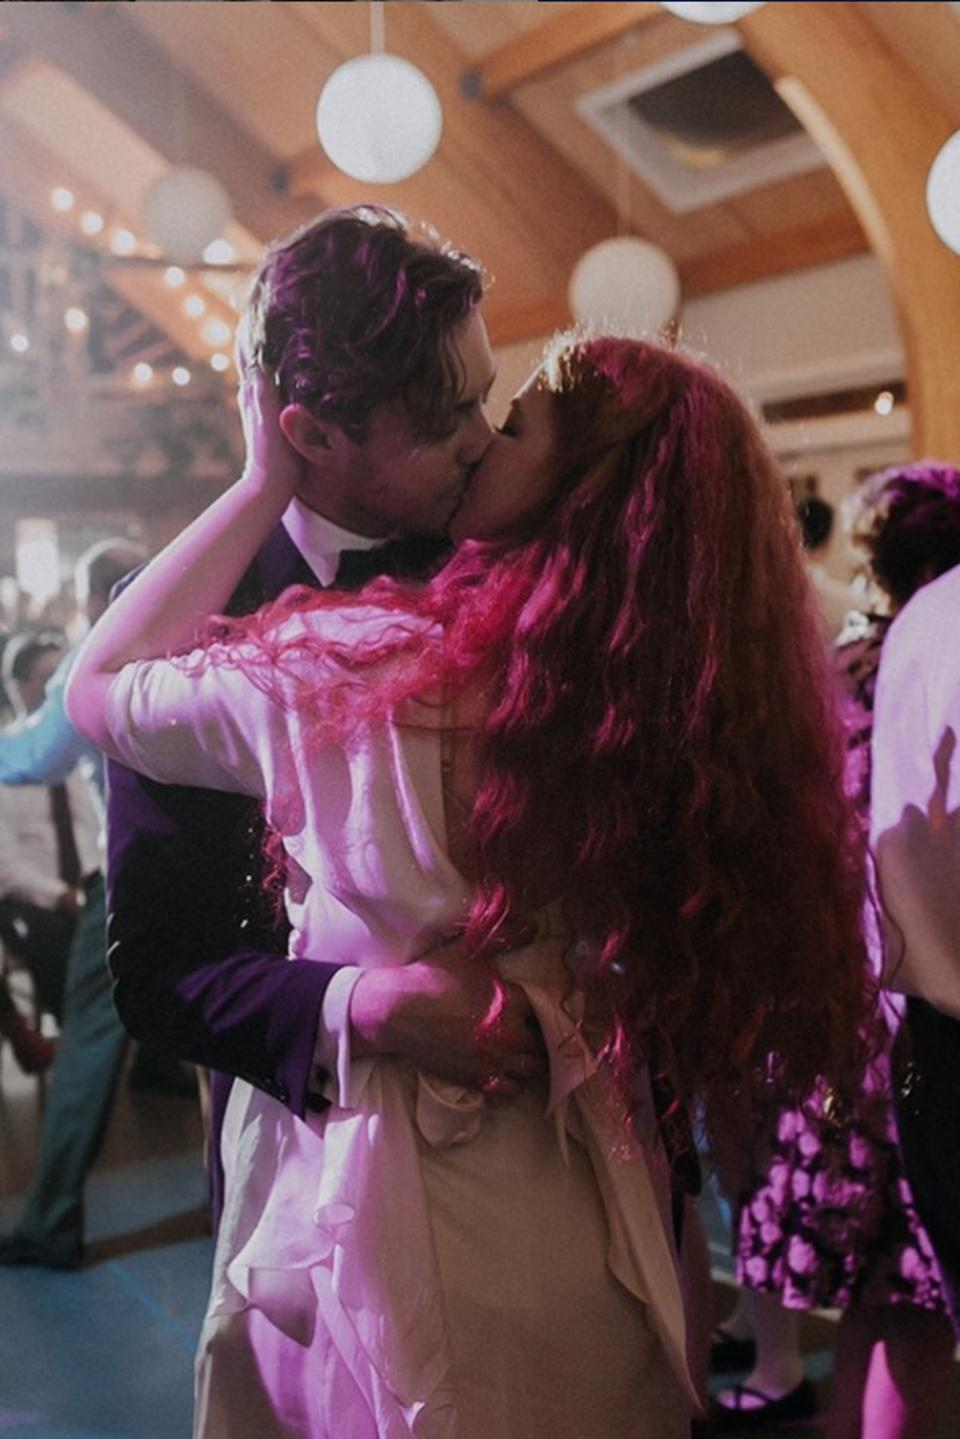 The newlyweds kiss at their wedding.